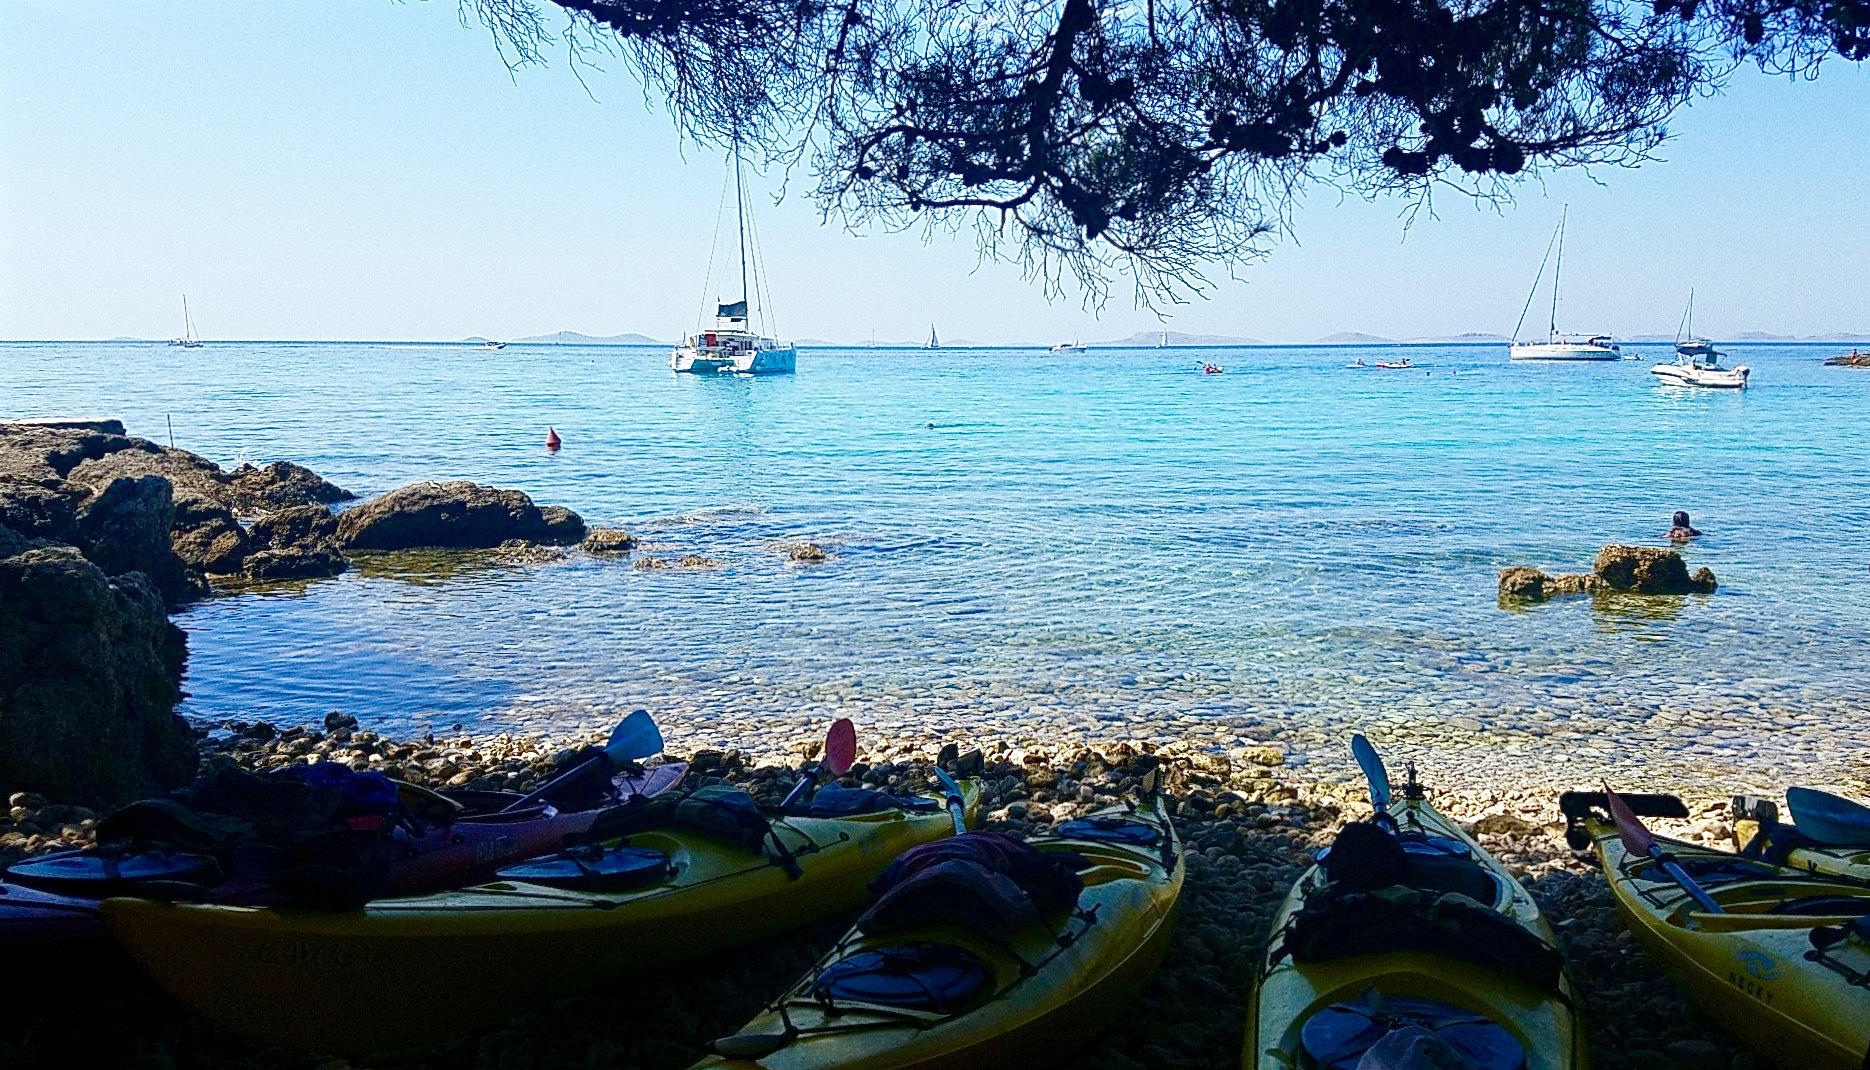 Sea kayaking Experience | Top 5 reasons to book with Jamming Adventures Croatia